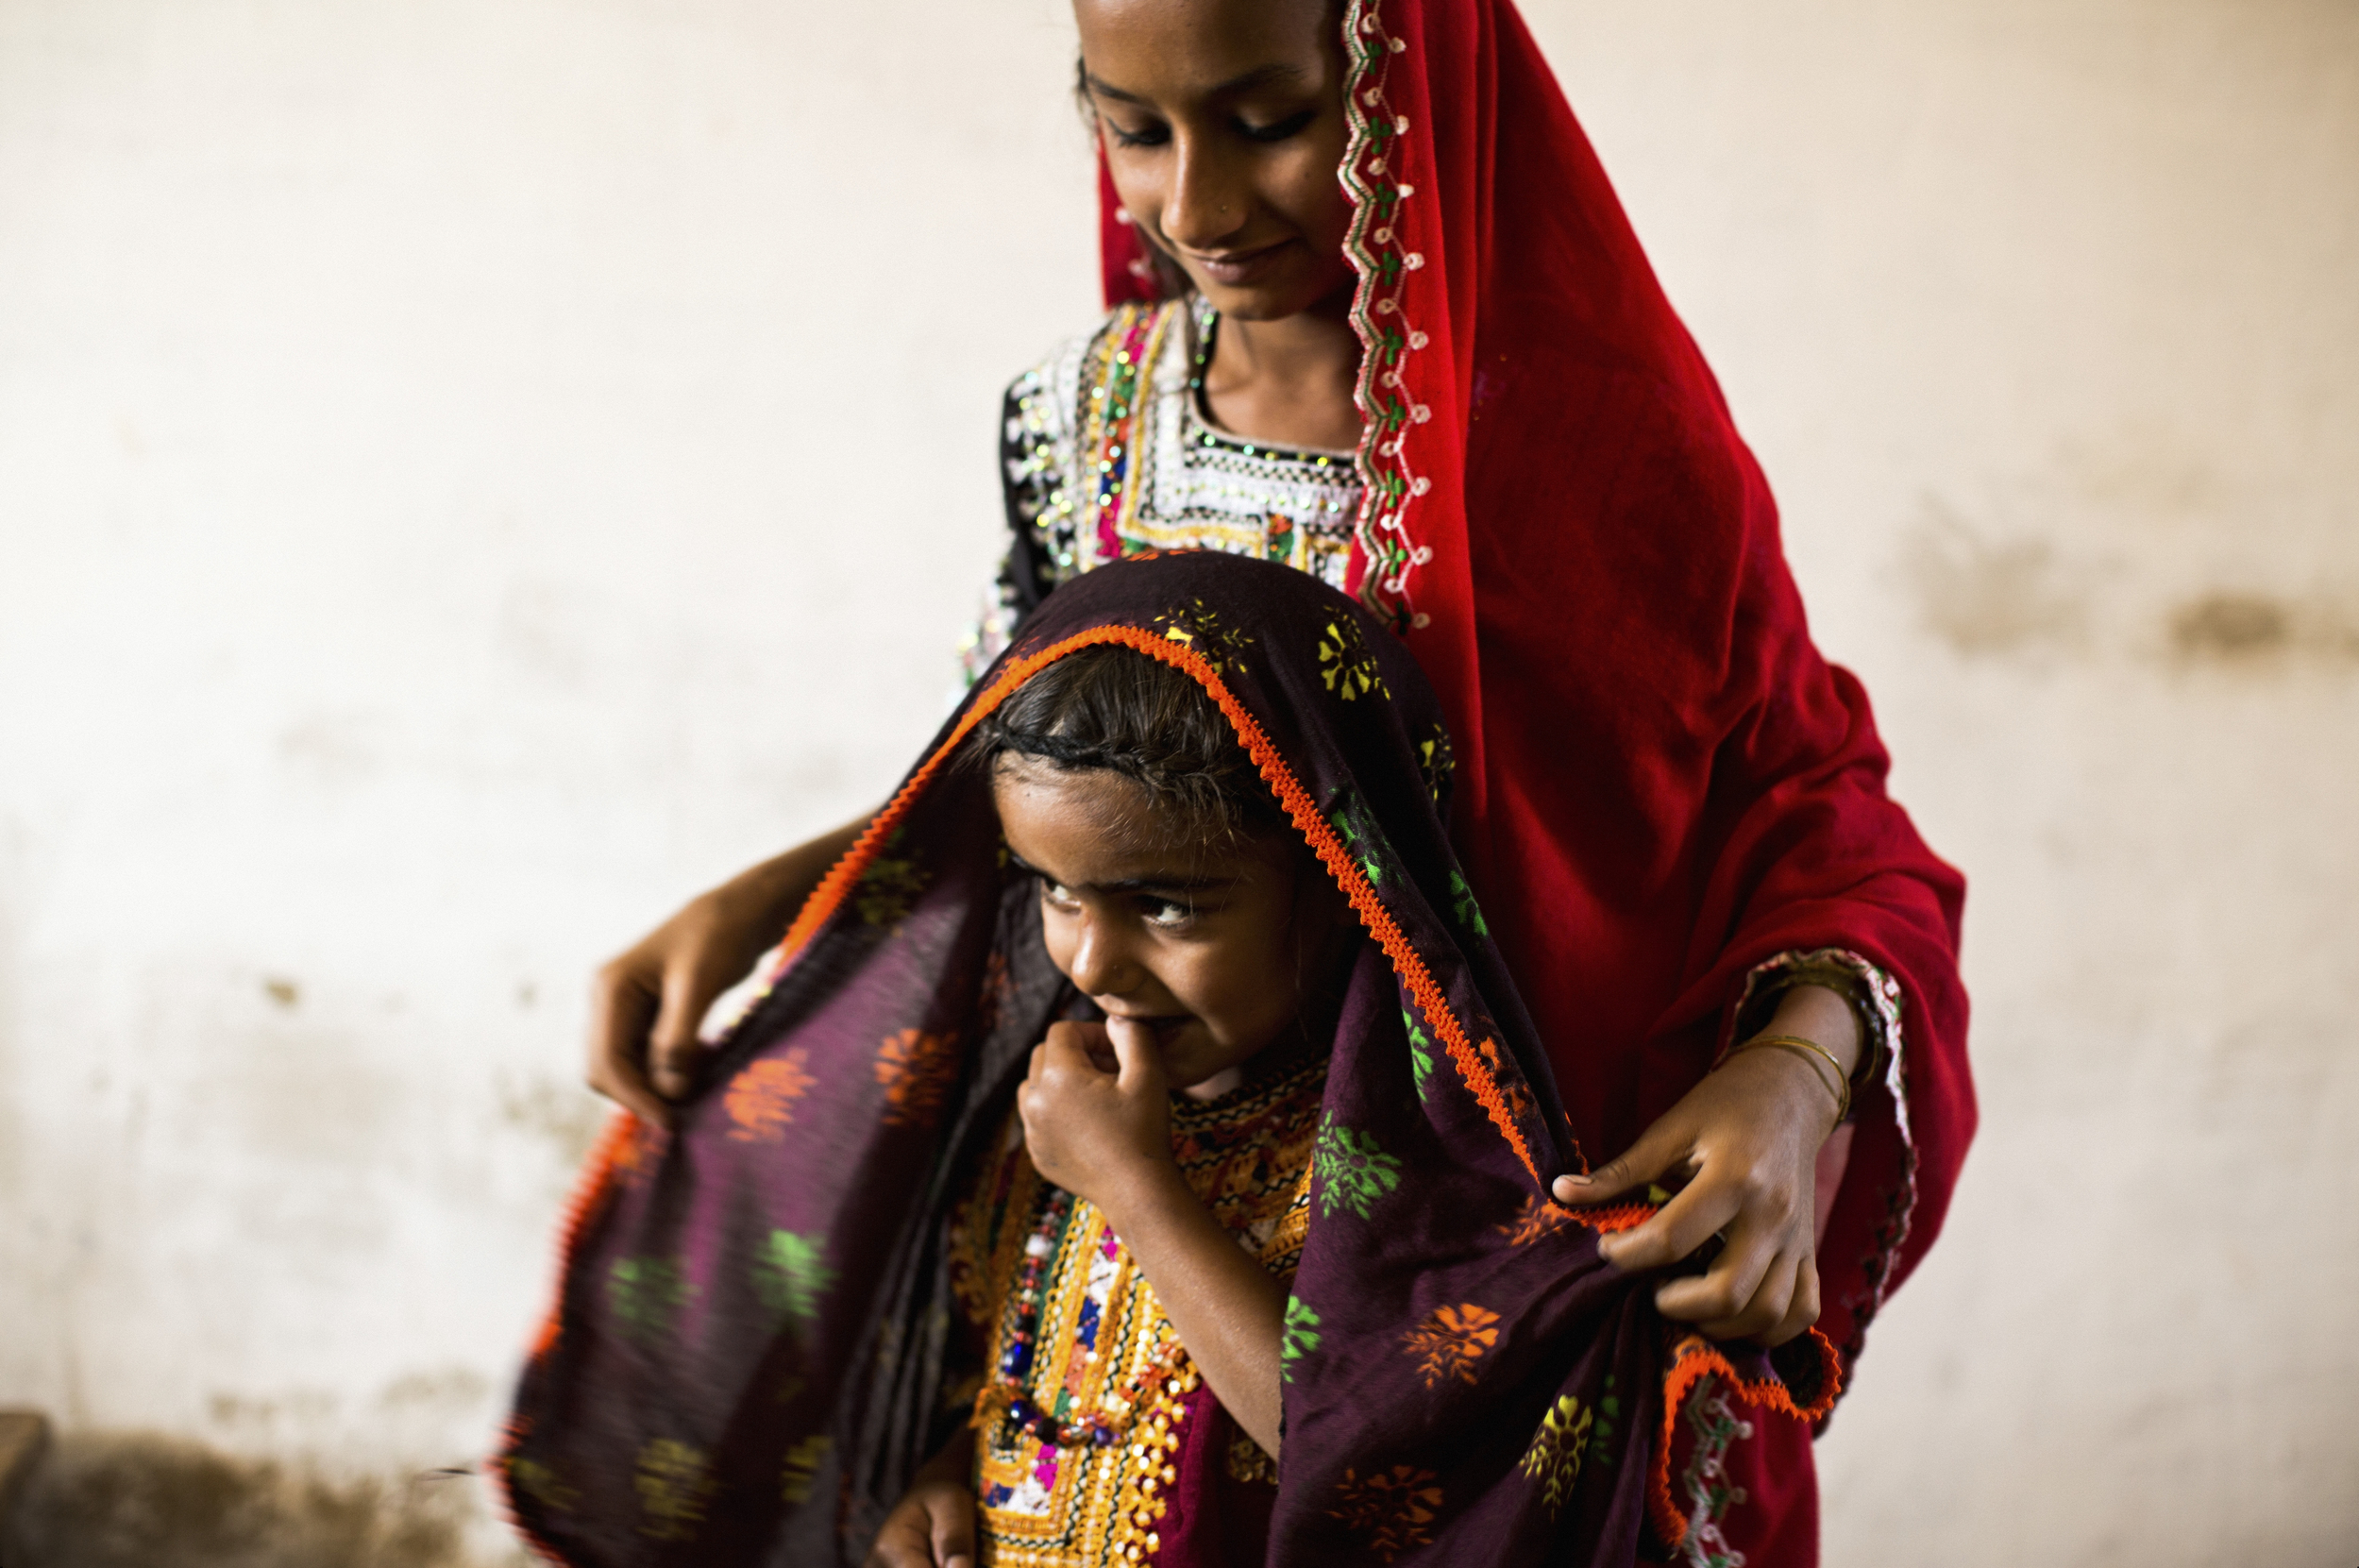 """An older girl fixes her younger classmate's headscarf in Haji Saleh Jat. Residents of the area are famed for their skilled embroidery work. """"The children are so clean and beautiful now,"""" says head teacher Abdul Hakeem. """"That has been a positive change; there is a healthier environment around the school."""""""